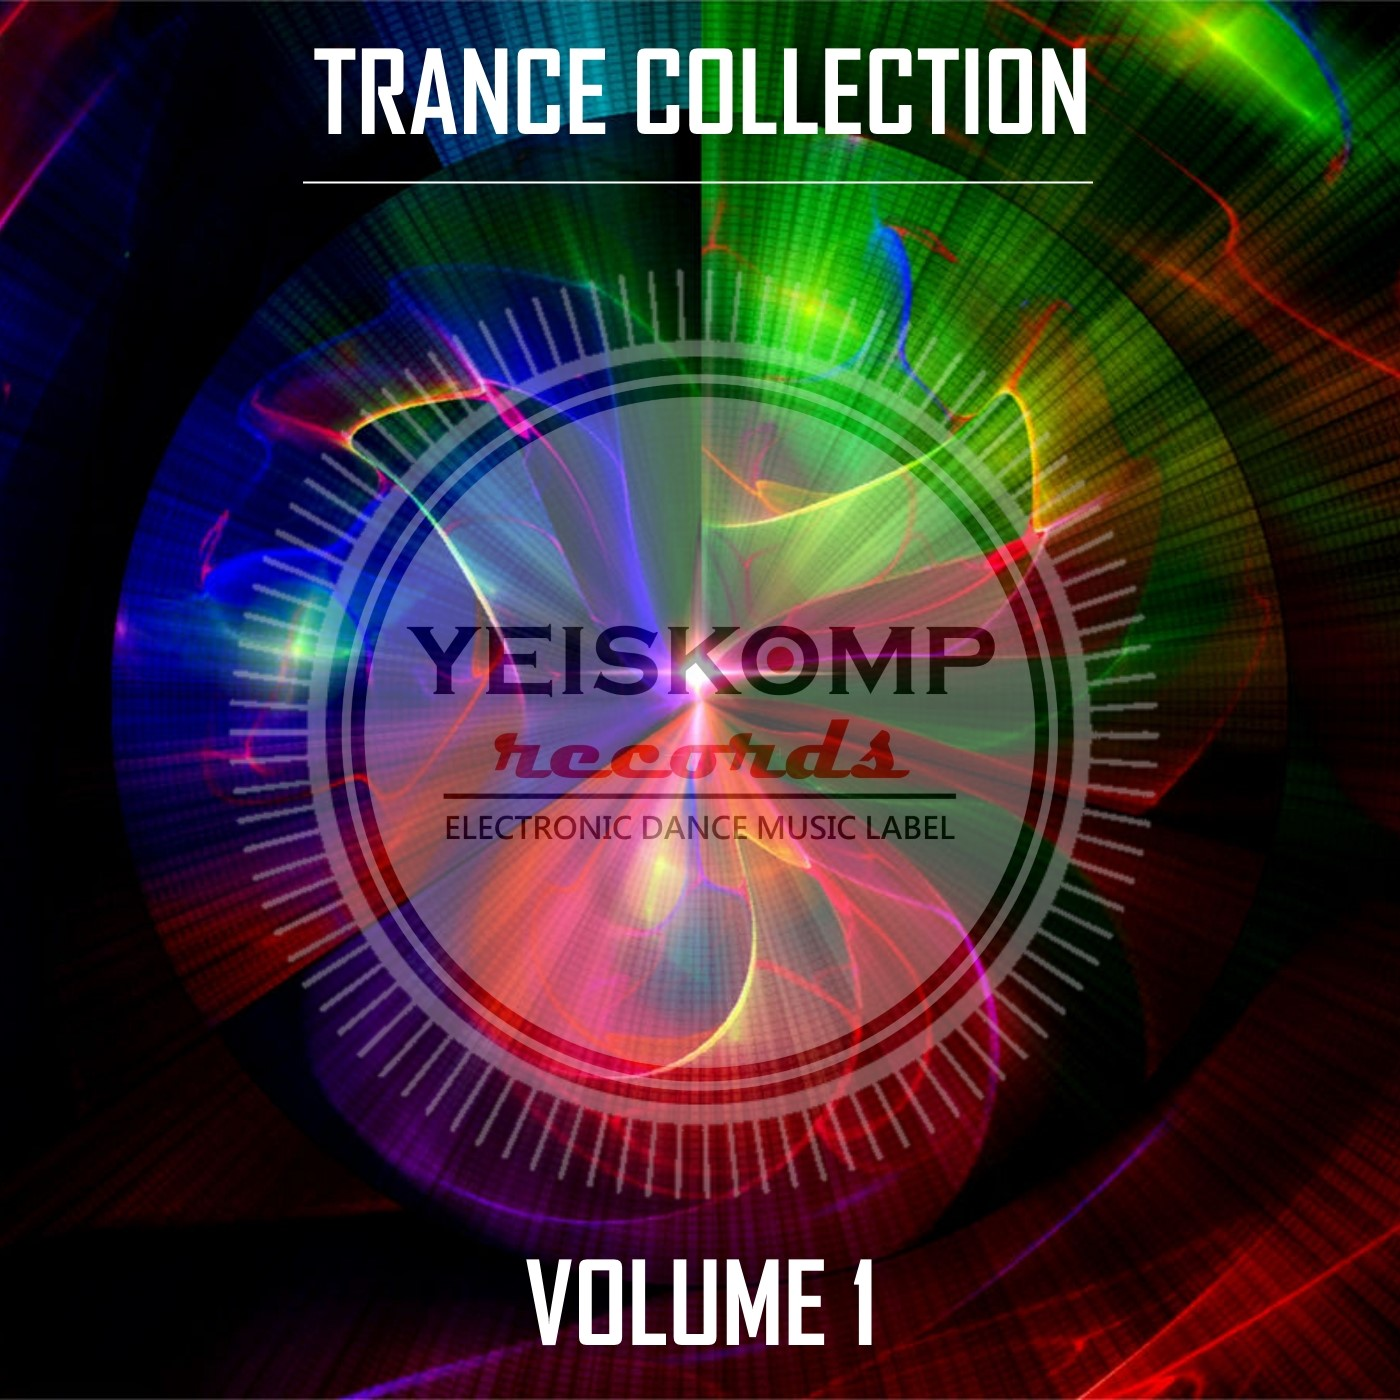 Trance Collection by YR, Vol. 1